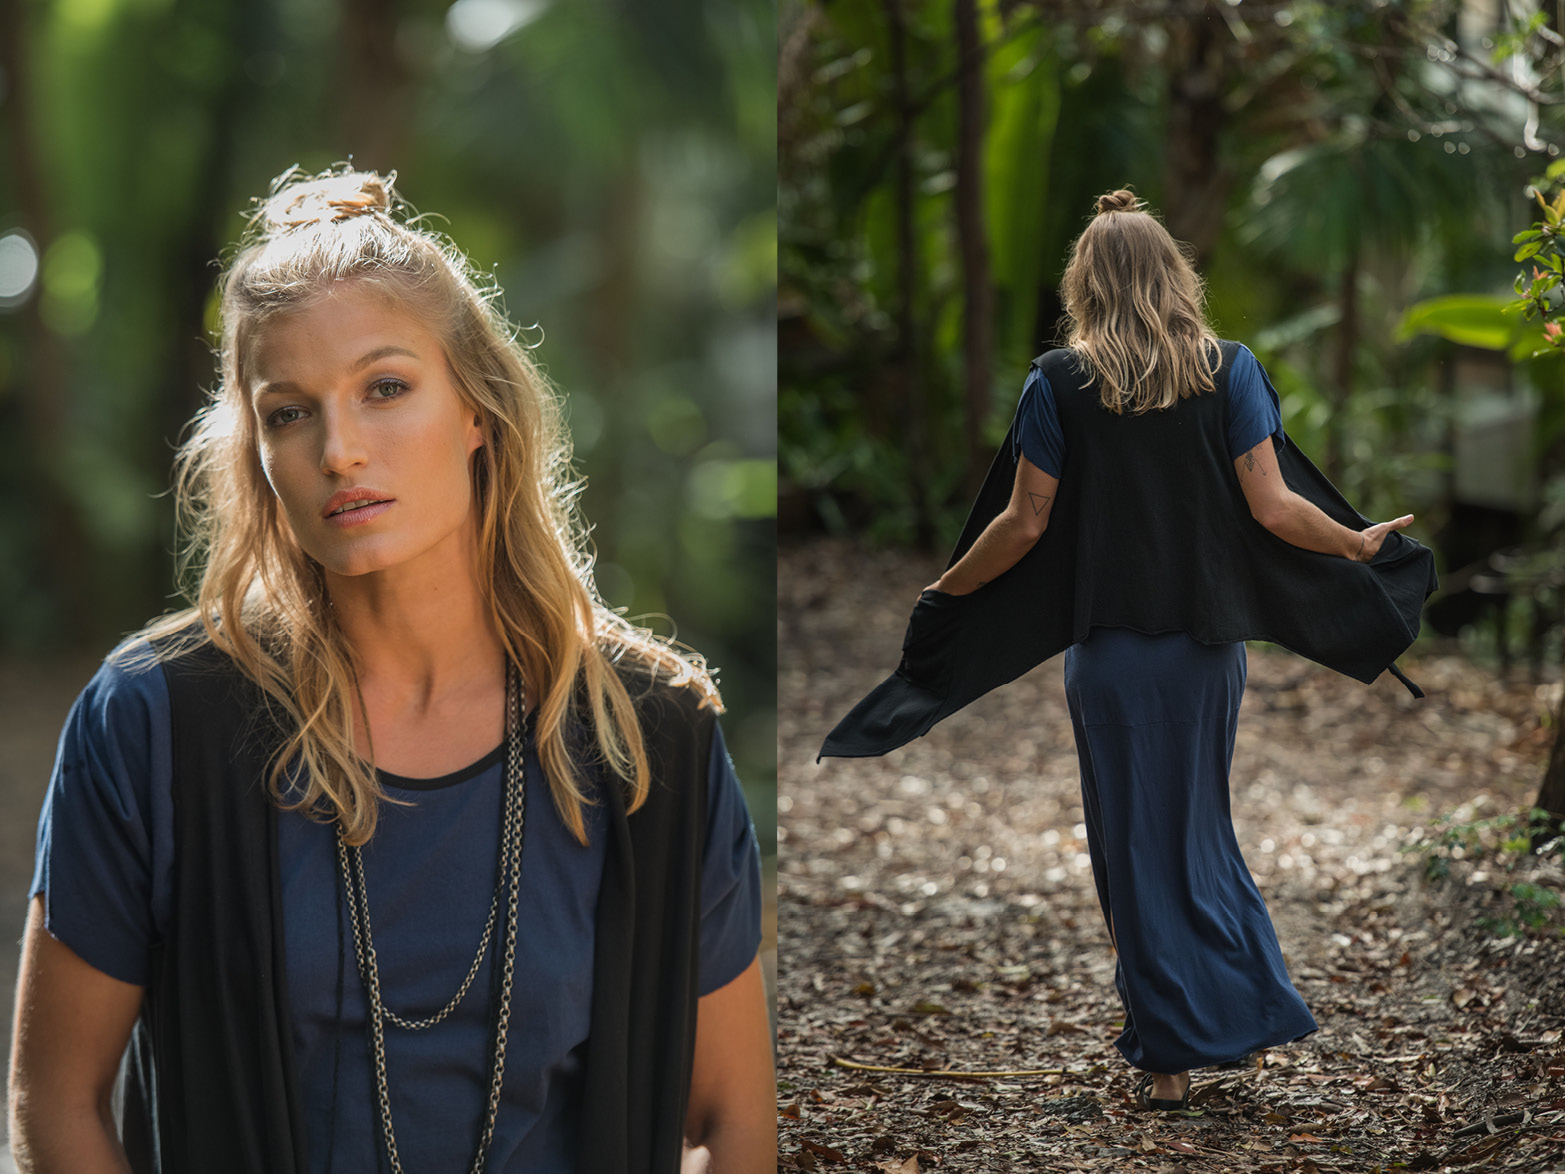 australian made womenswear, eco chic, ethical fashion, vegan clothing